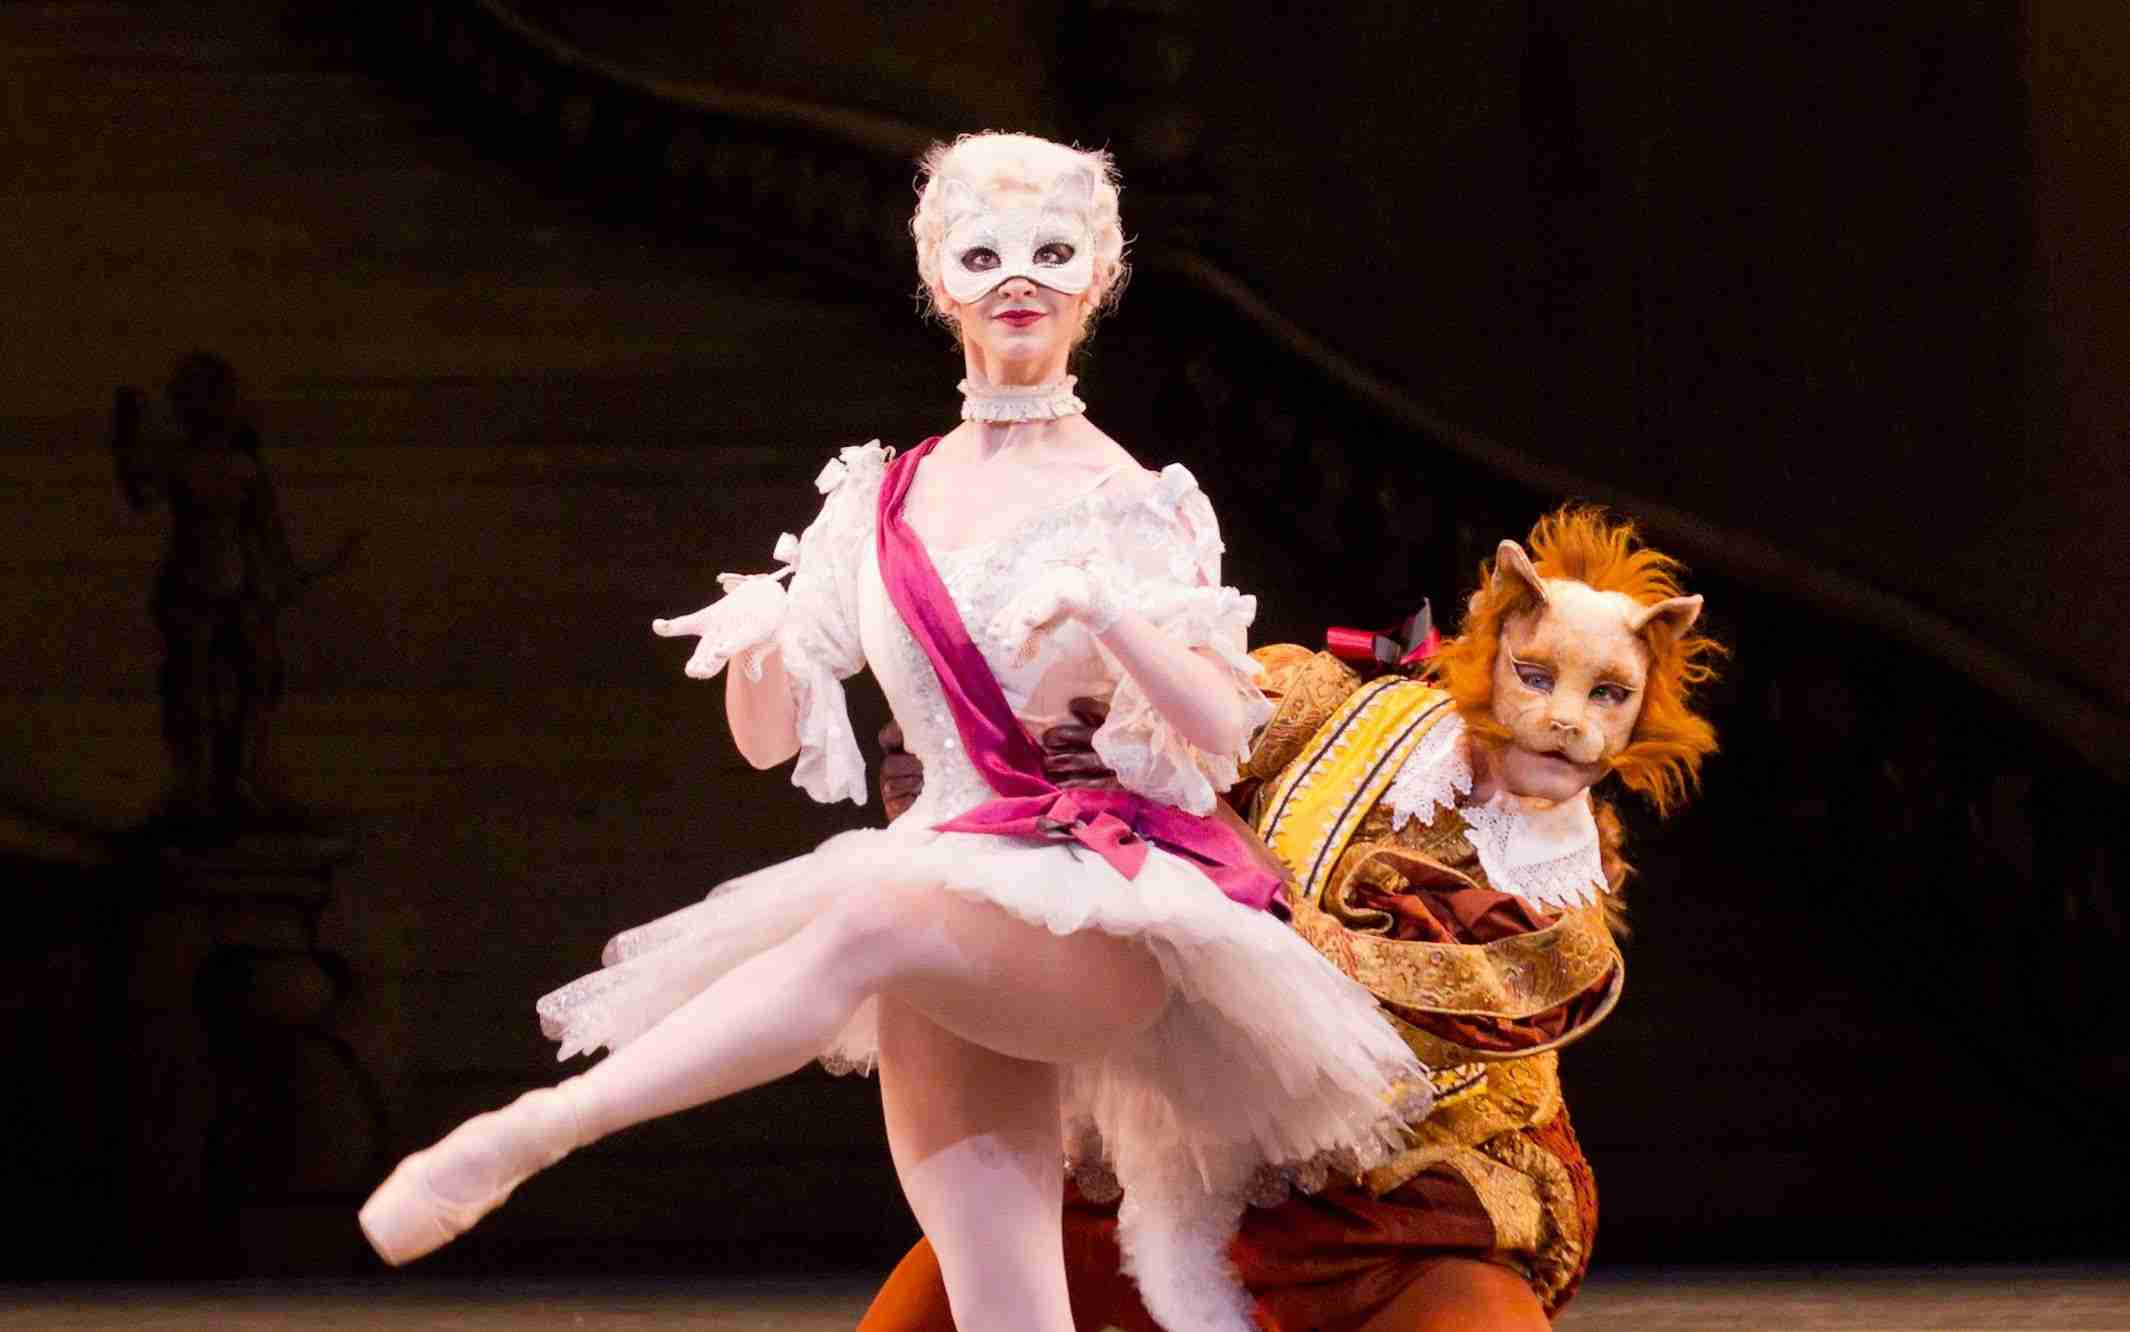 The Sleeping Beauty - White Cat and Puss-in-Boots pas de deux (The Royal Ballet) - YouTube